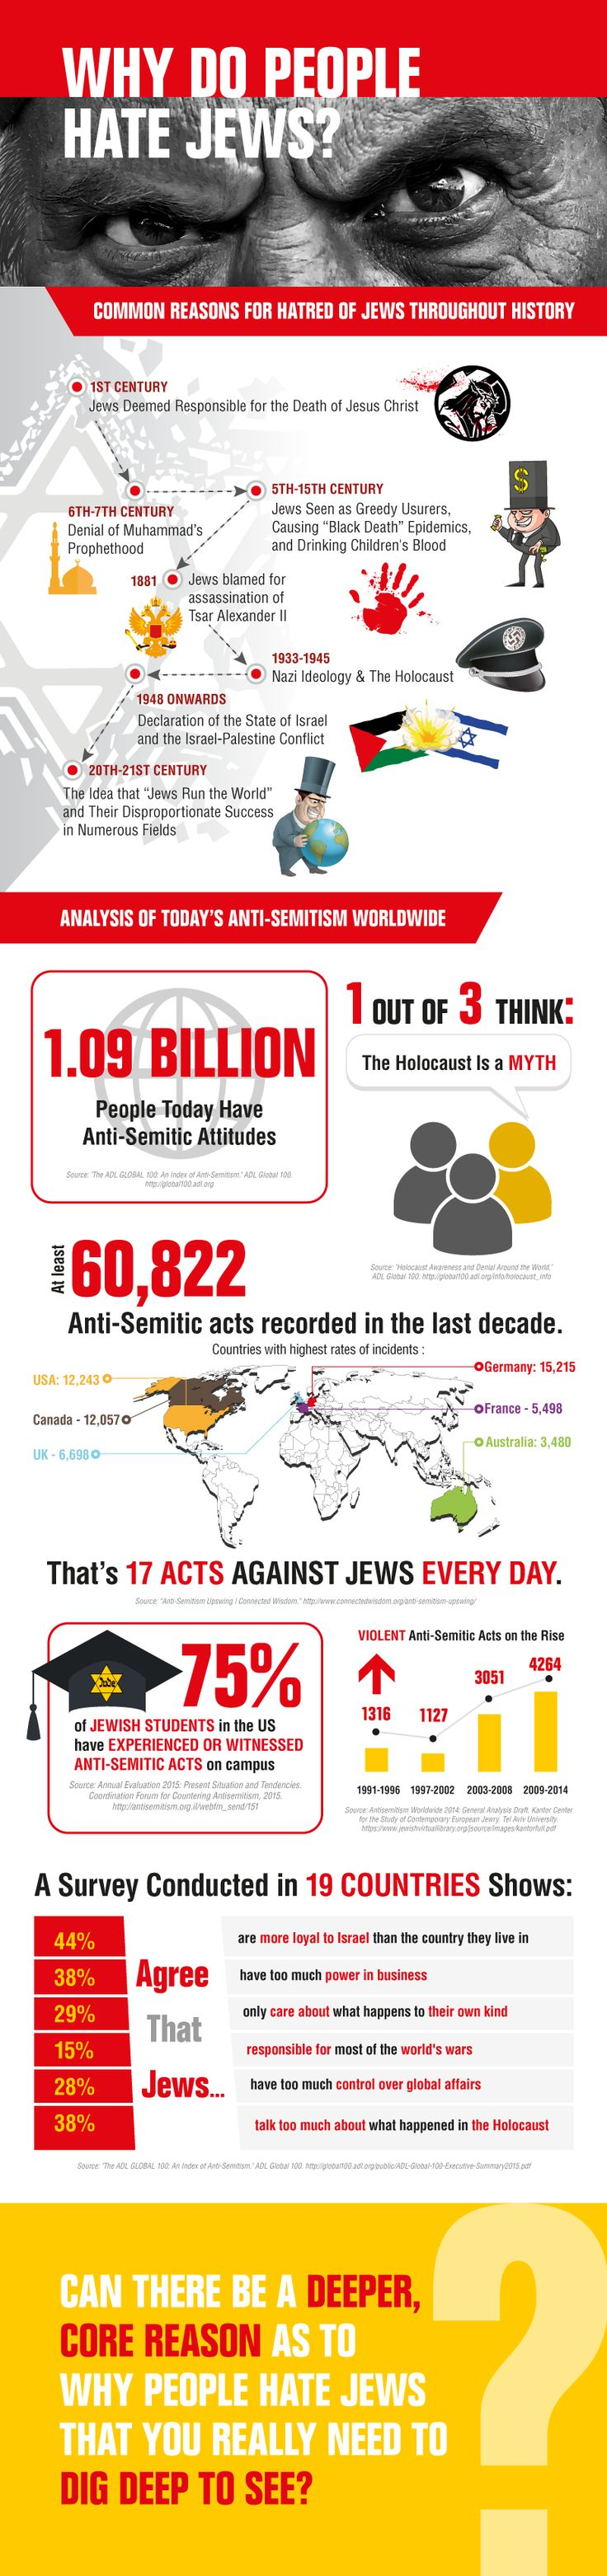 #infographic #antisemitism Read full article http://jewishbusinessnews.com/2016/04/28/why-people-hate-jews-and-the-rise-of-anti-semitism-today/